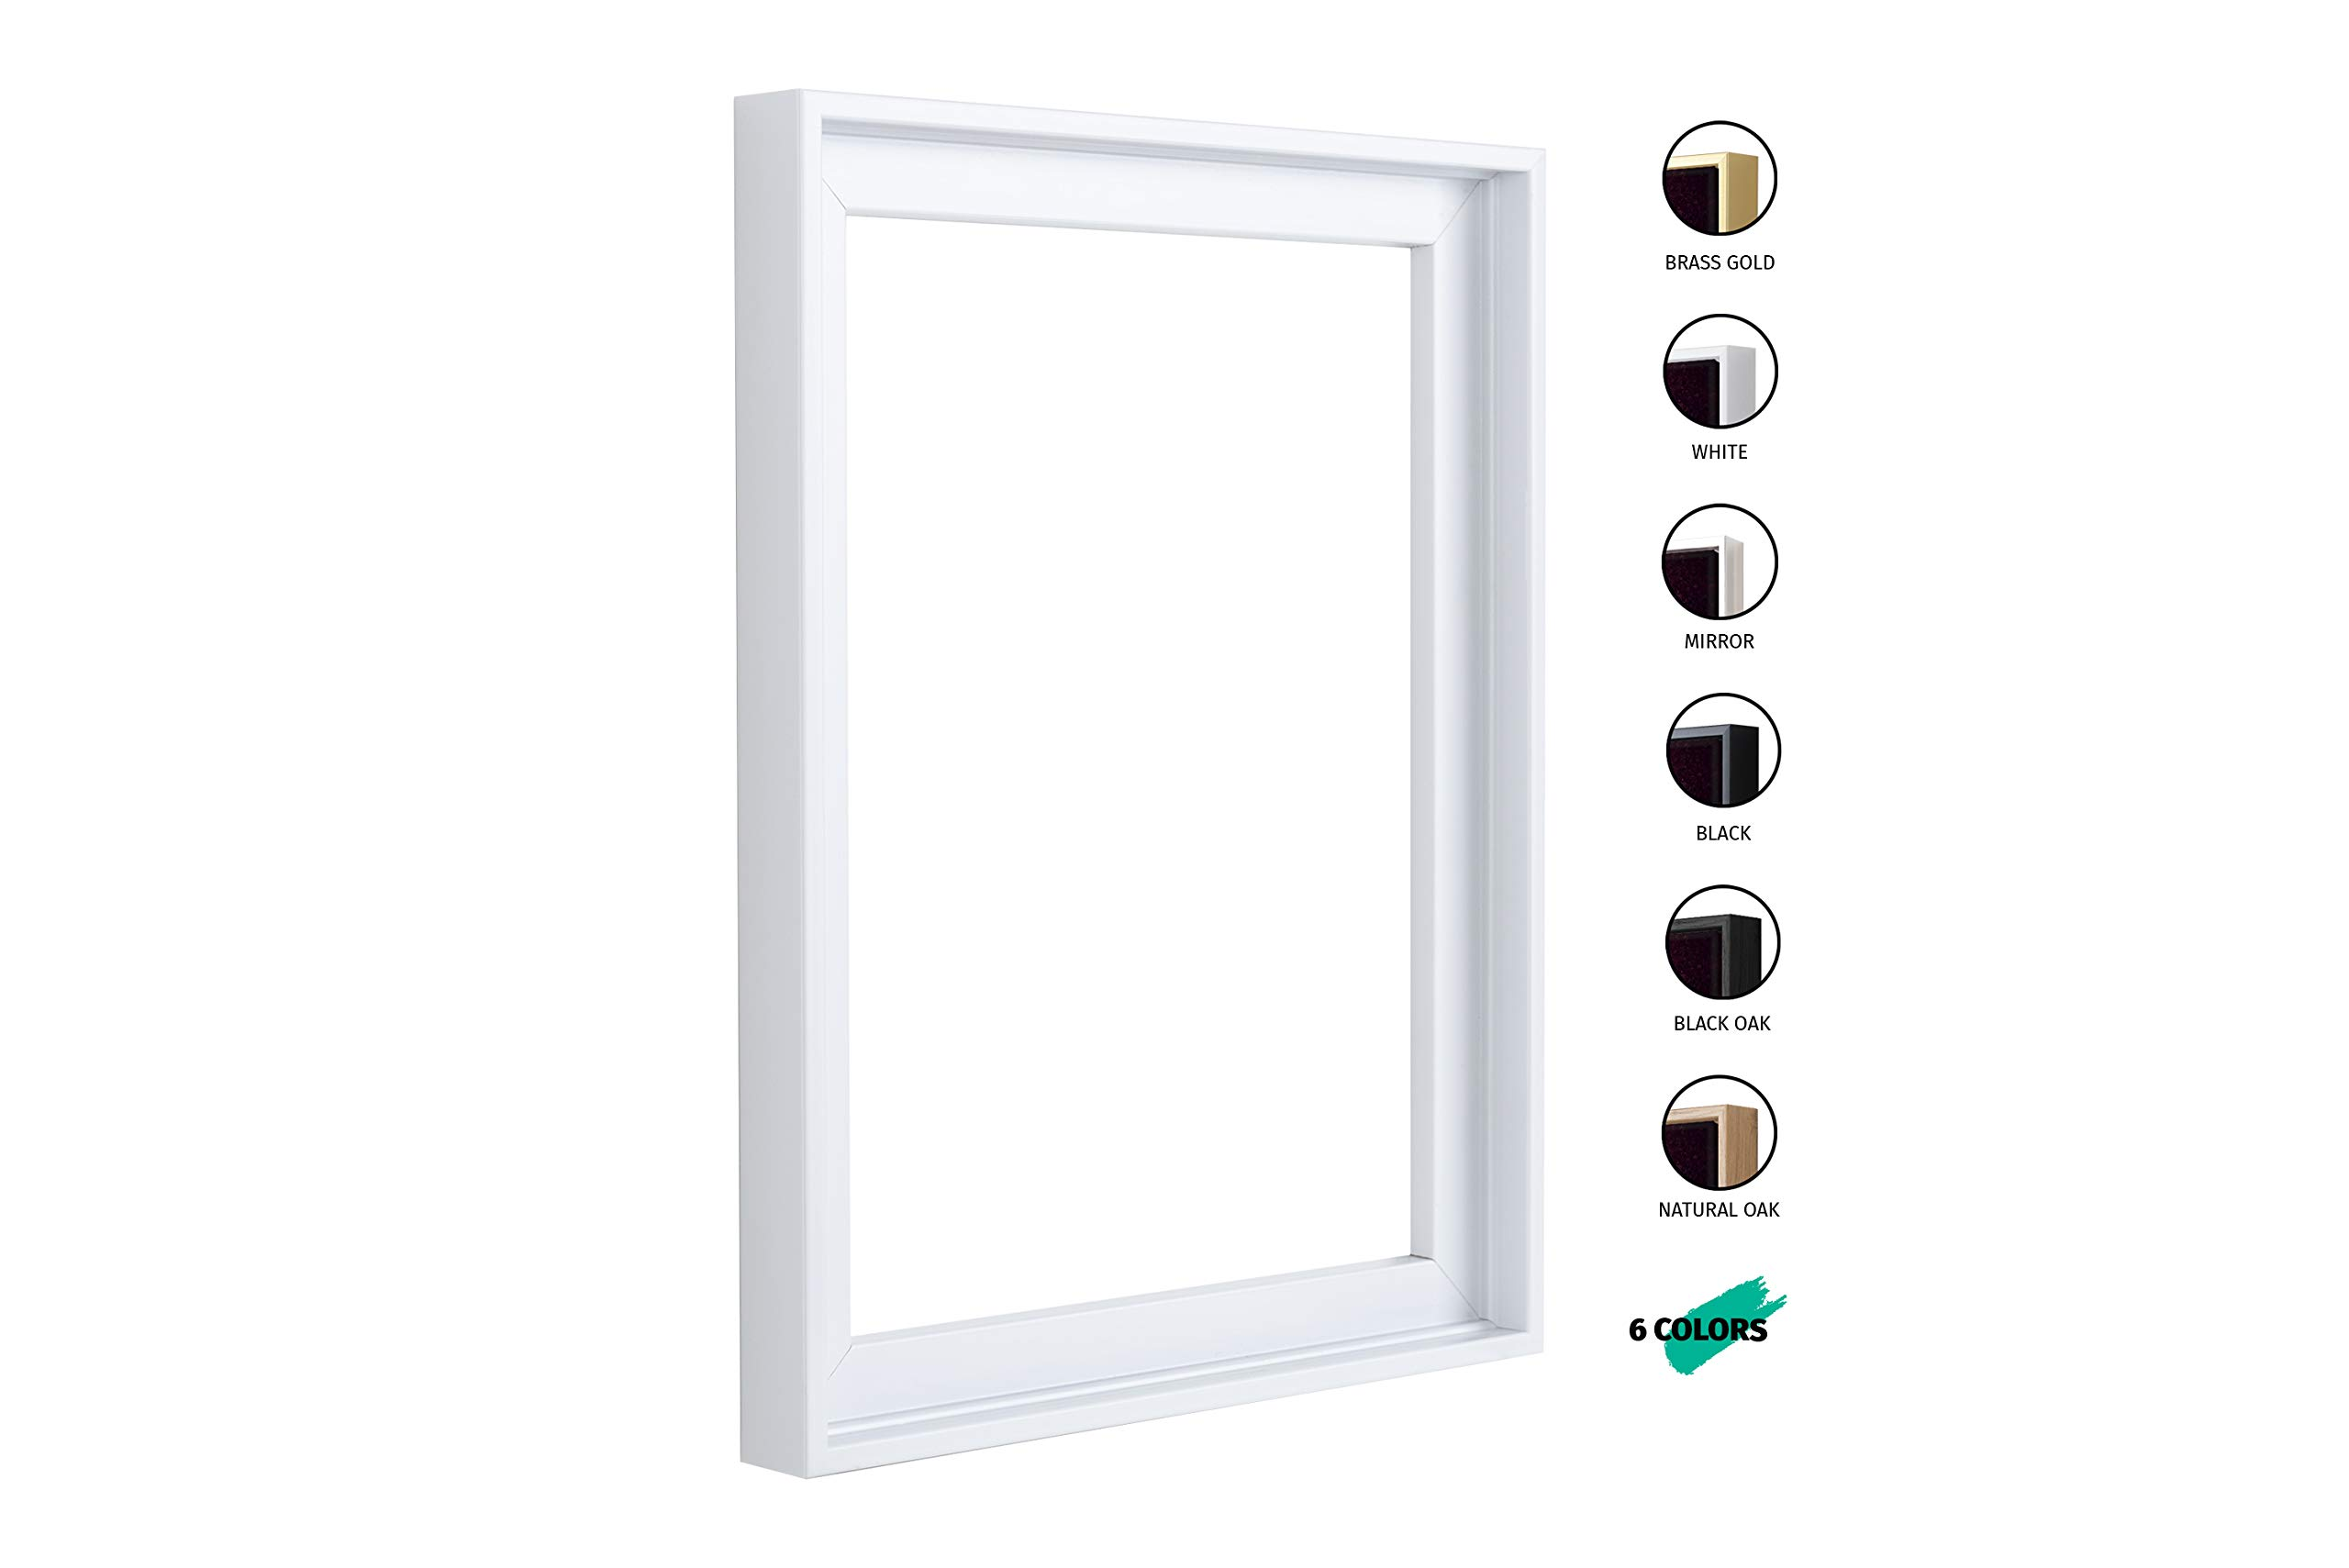 Floater Frames for Canvas Paintings 16x20   6 Colors   Floater Frame for Stretched Canvas, Canvas Panels and Finished Artwork   1-3/8'' Thick for 3/4'' Deep Canvas (White, 16 x 20 inch) by Pixy Canvas